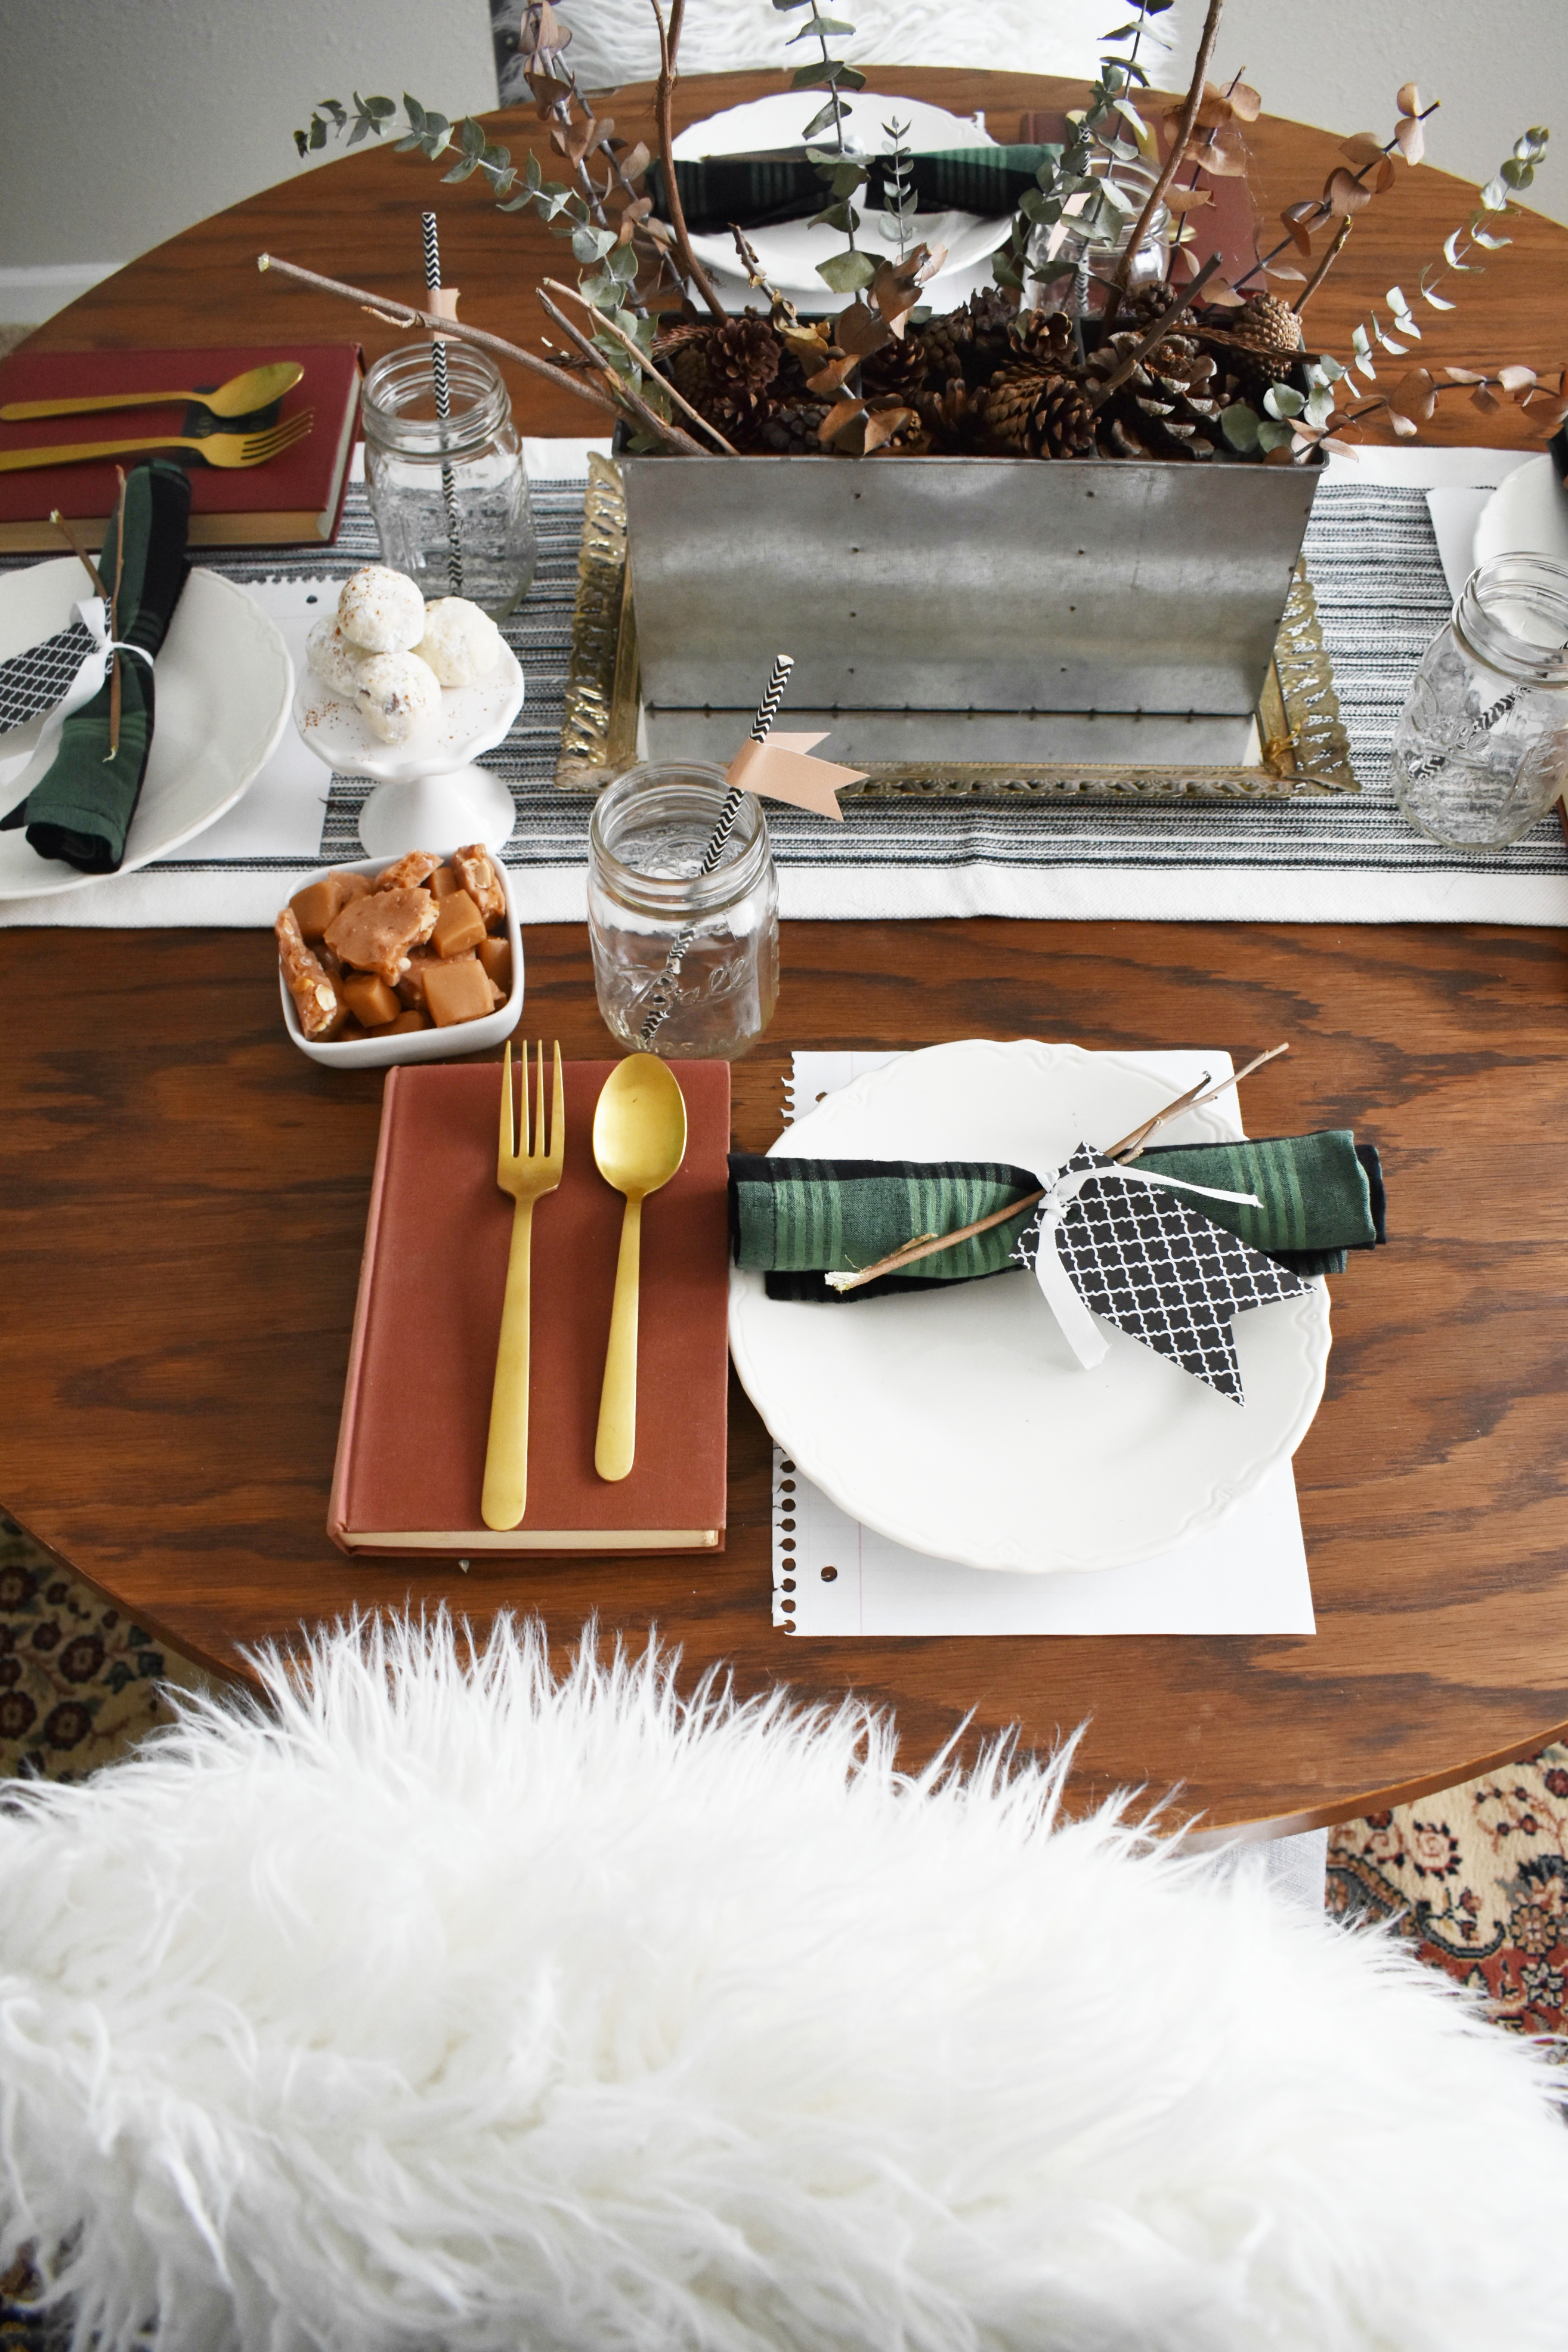 5 ways to decorate your table using items from around the home today i wanted to show you 5 ways you can add fun touches to your tablescape using items from around the home you ready here we go geotapseo Gallery